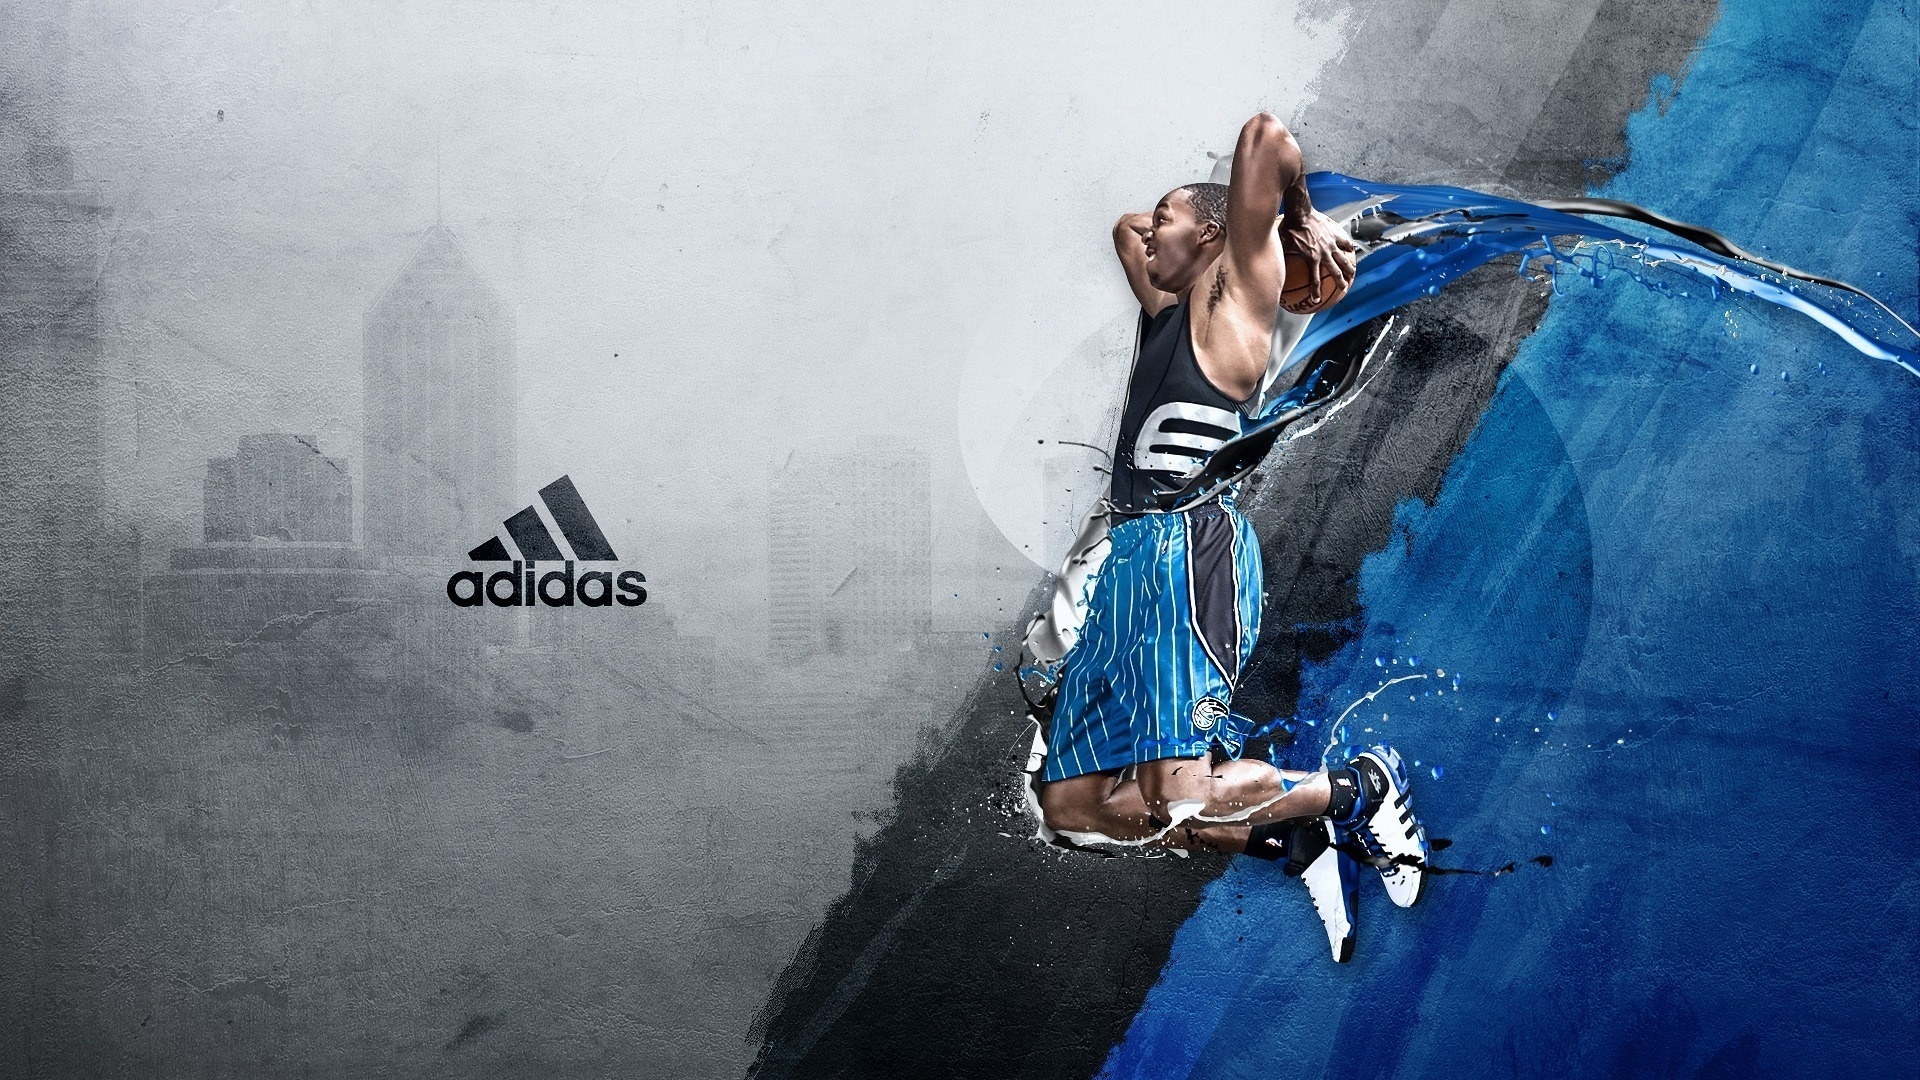 Adidas full hd voltagebd Image collections